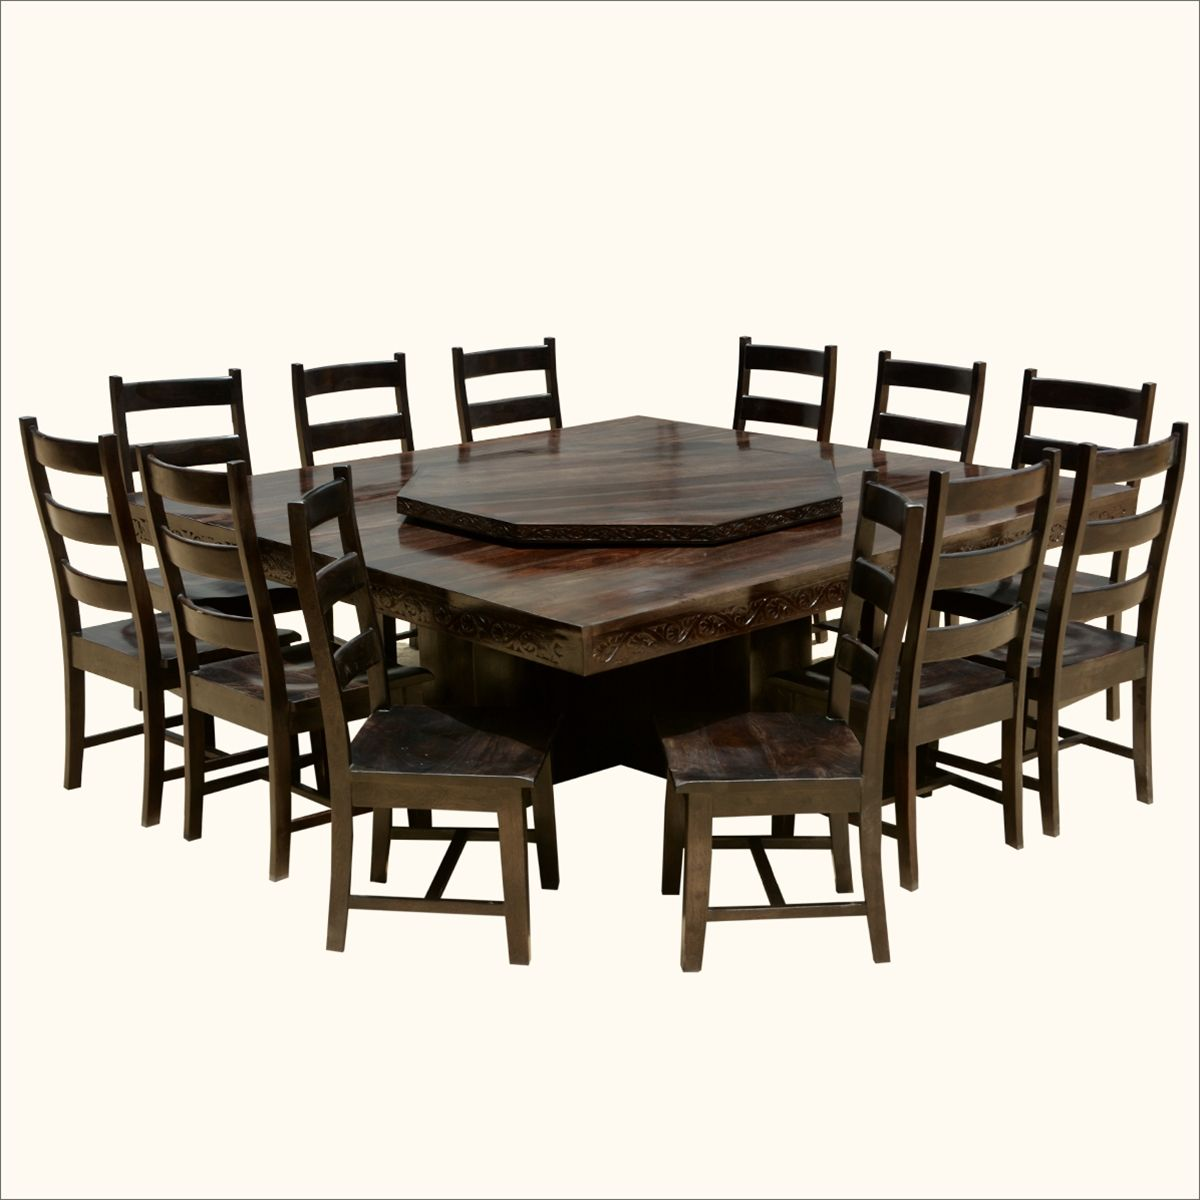 Modern Pioneer Solid Wood Lazy Susan Pedestal Dining Table & Chair